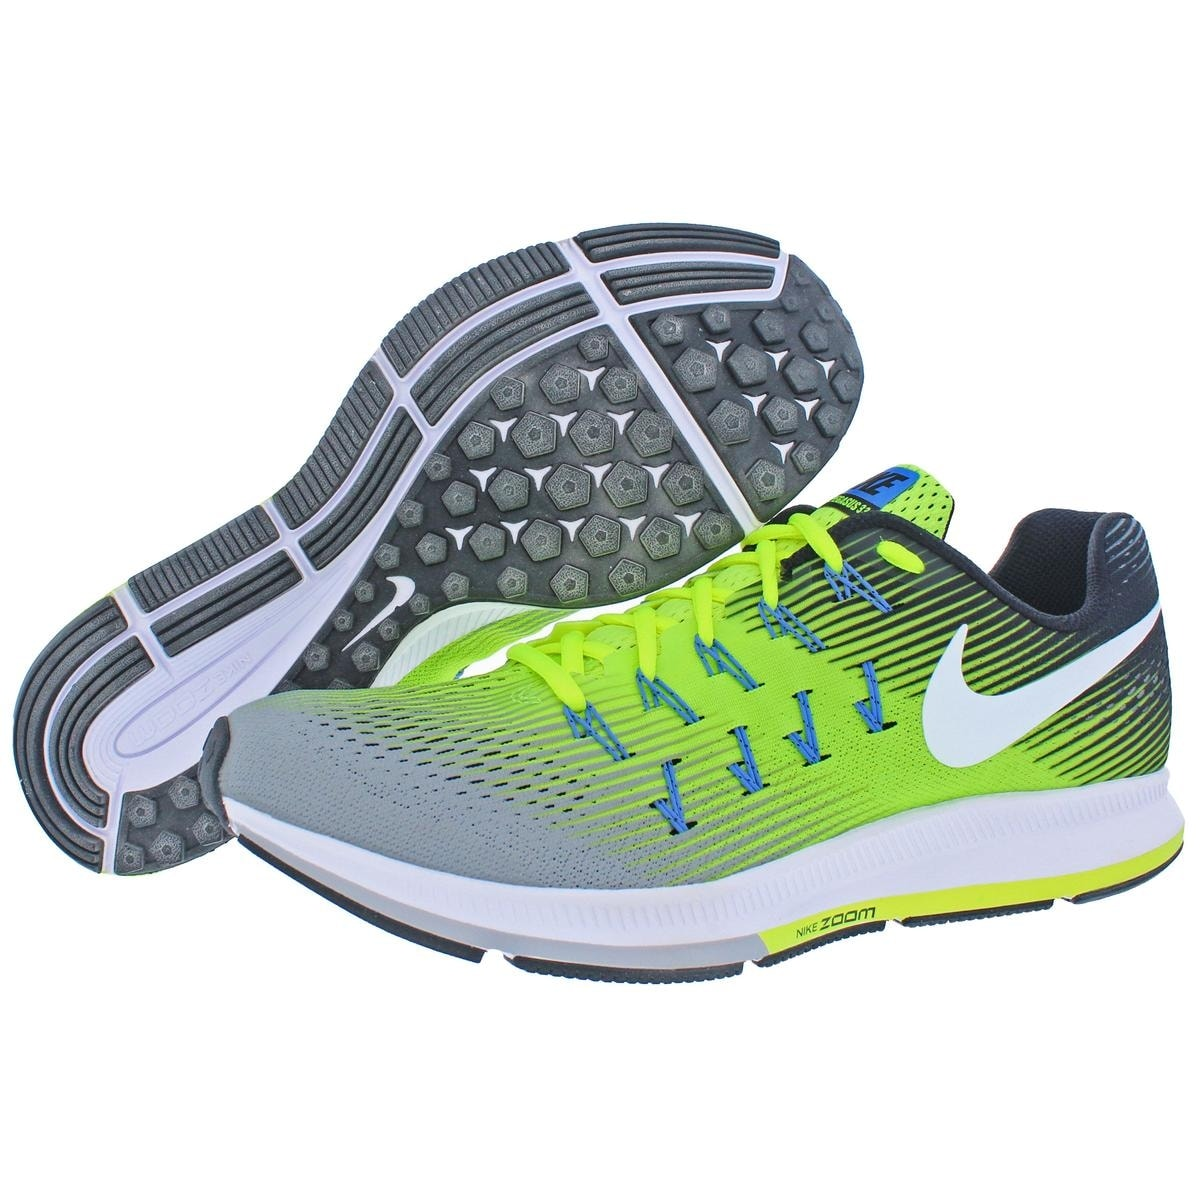 quality design 5154c a2410 Shop Nike Womens Air Zoom Pegasus 33 Running Shoes Run Fast Casual - Free  Shipping Today - Overstock - 21803294